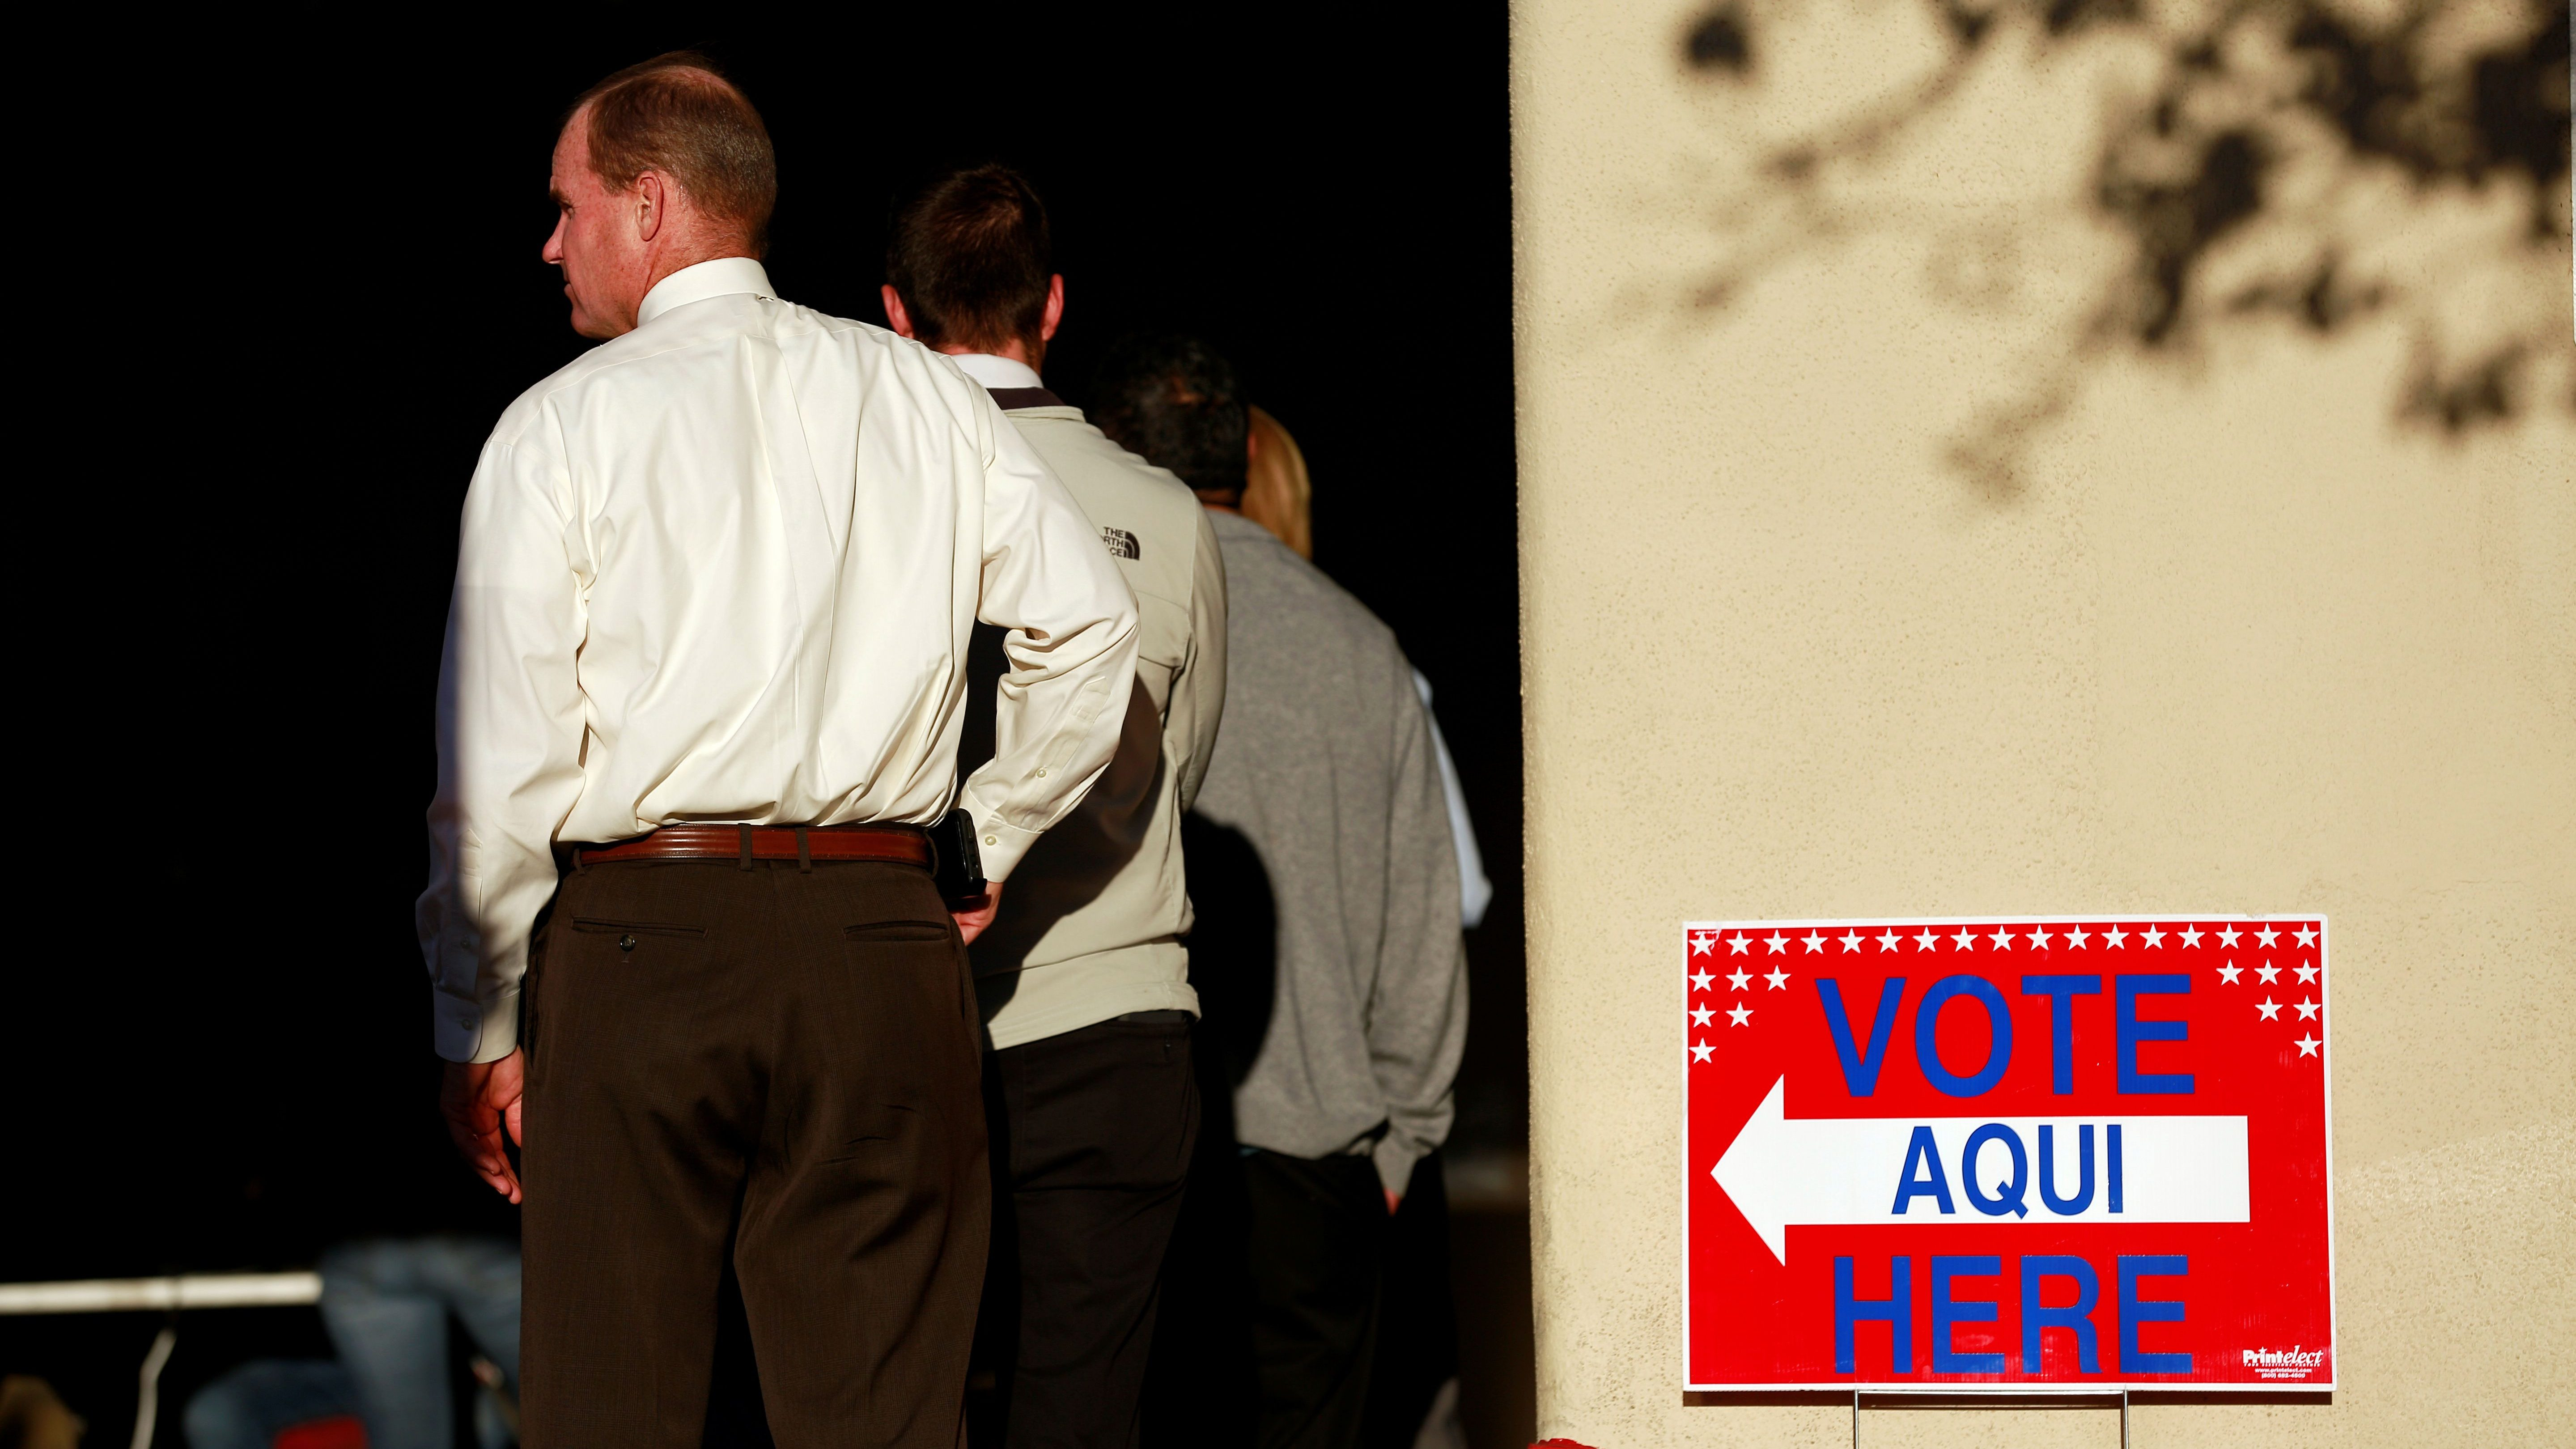 Voters make their way to the polling stations to cast their votes for the midterm elections in El Paso, Texas, U.S. November 6, 2018.